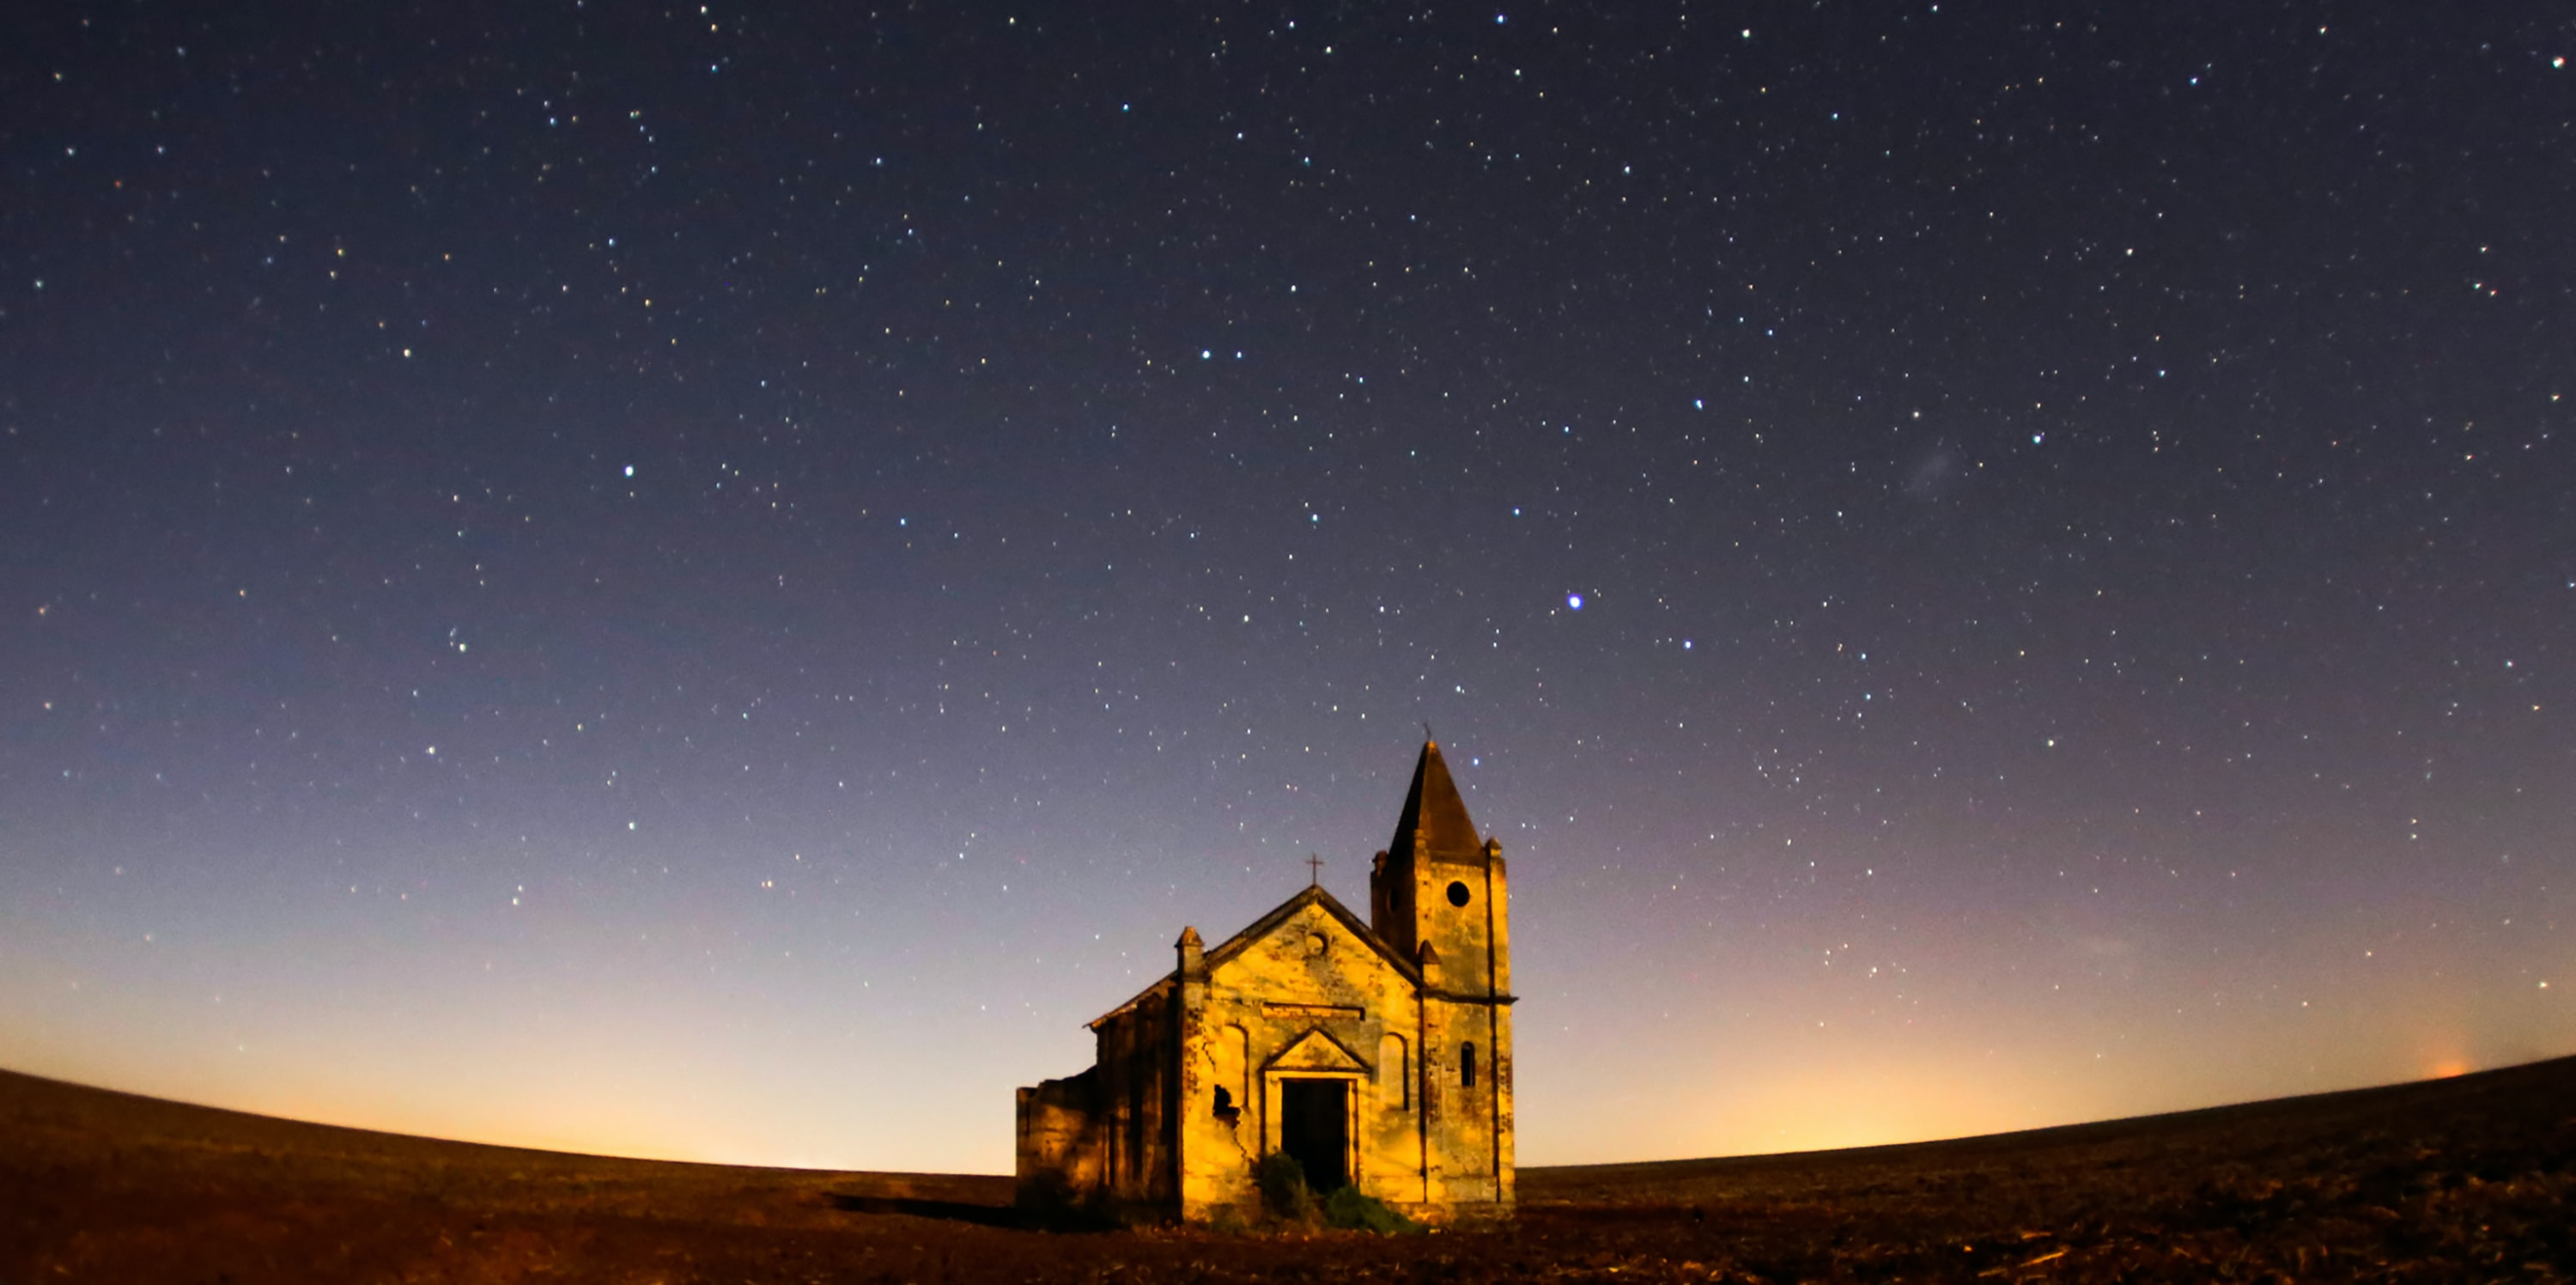 Panoramic view of a lone church building under the starry night sky